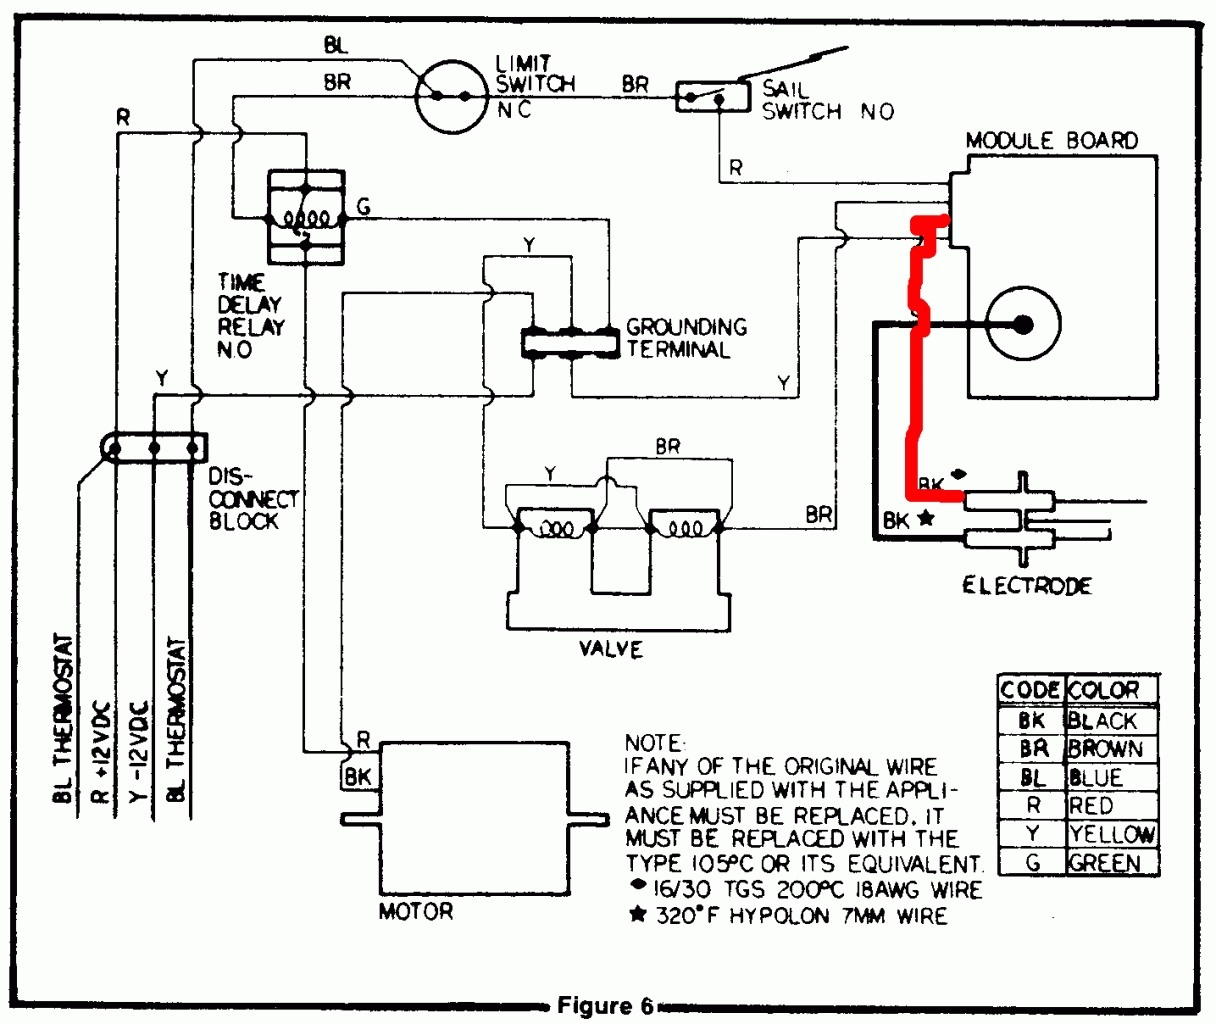 Keystone Travel Trailer Wiring Diagram